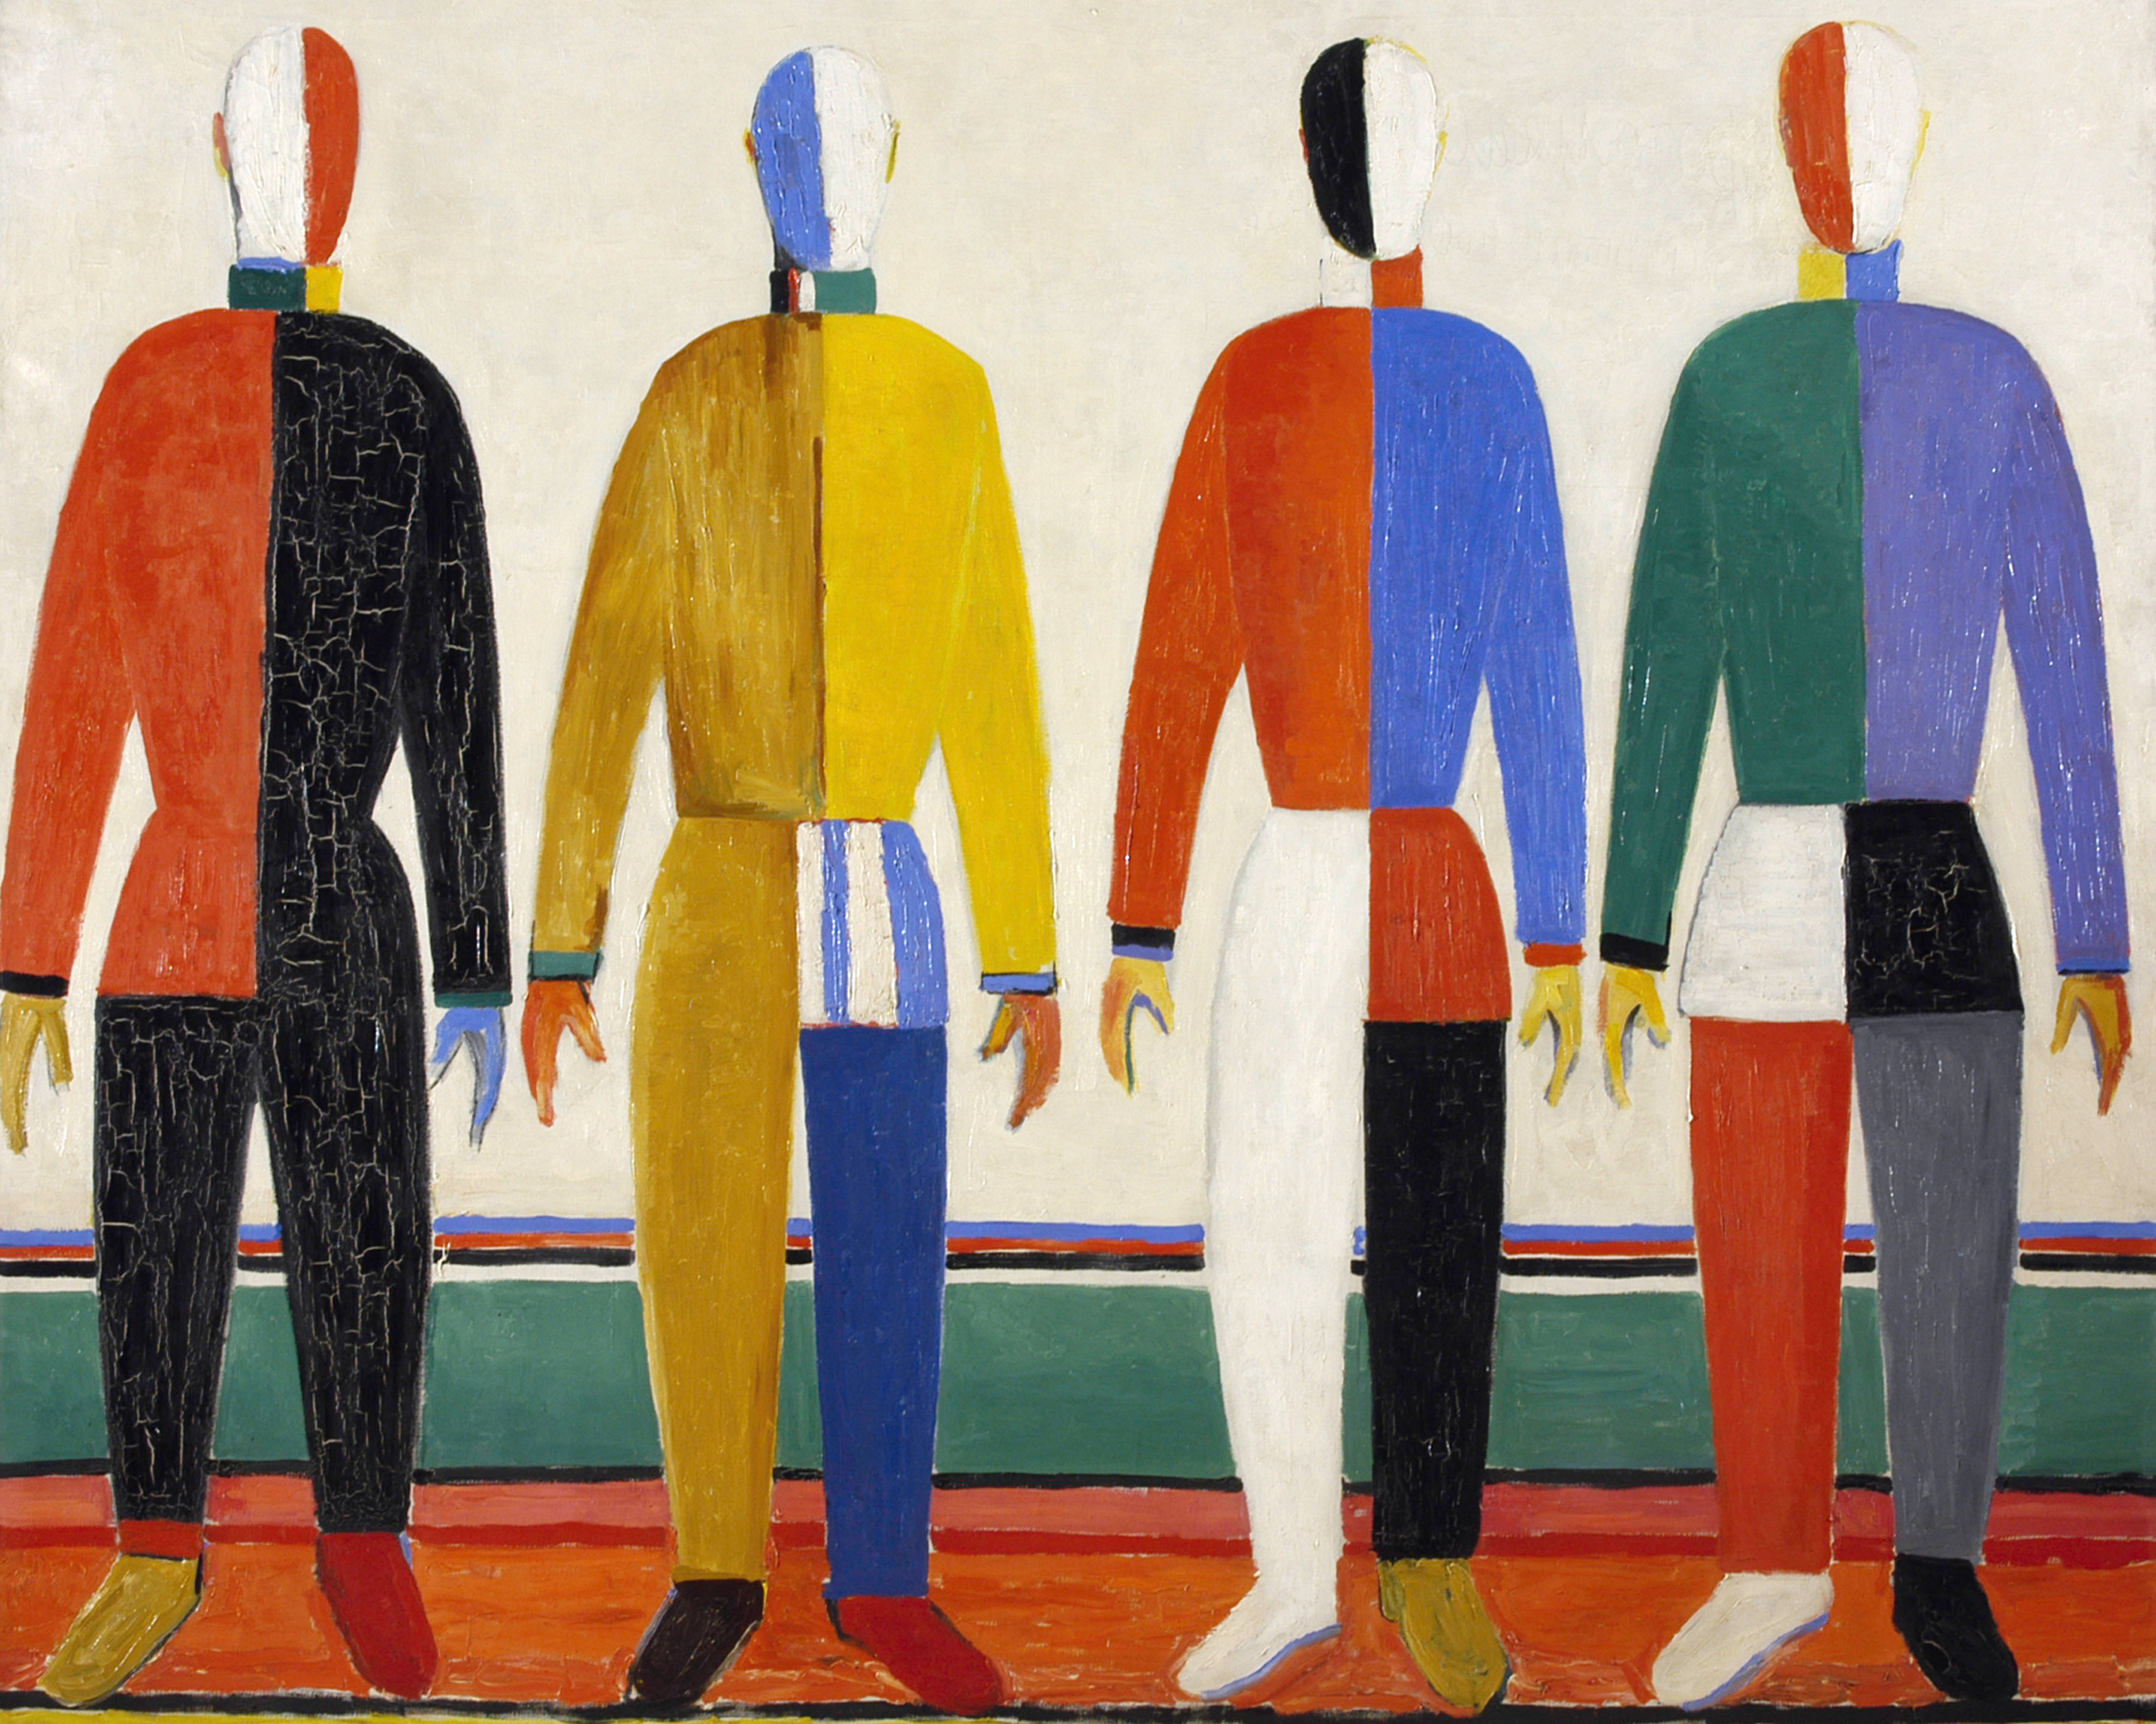 an interpretation of the red square painting by the russian painter kasimir malevich Artist, kazimir malevich year, 1915 (1915) medium, oil on canvas dimensions,  53 by 53 centimetres (21 in × 21 in) location, russian museum, saint  petersburg painterly realism of a peasant woman in two dimensions, more  commonly known as red square, is a 1915 painting by kazimir malevich  red  square is currently in the collection of the russian museum.